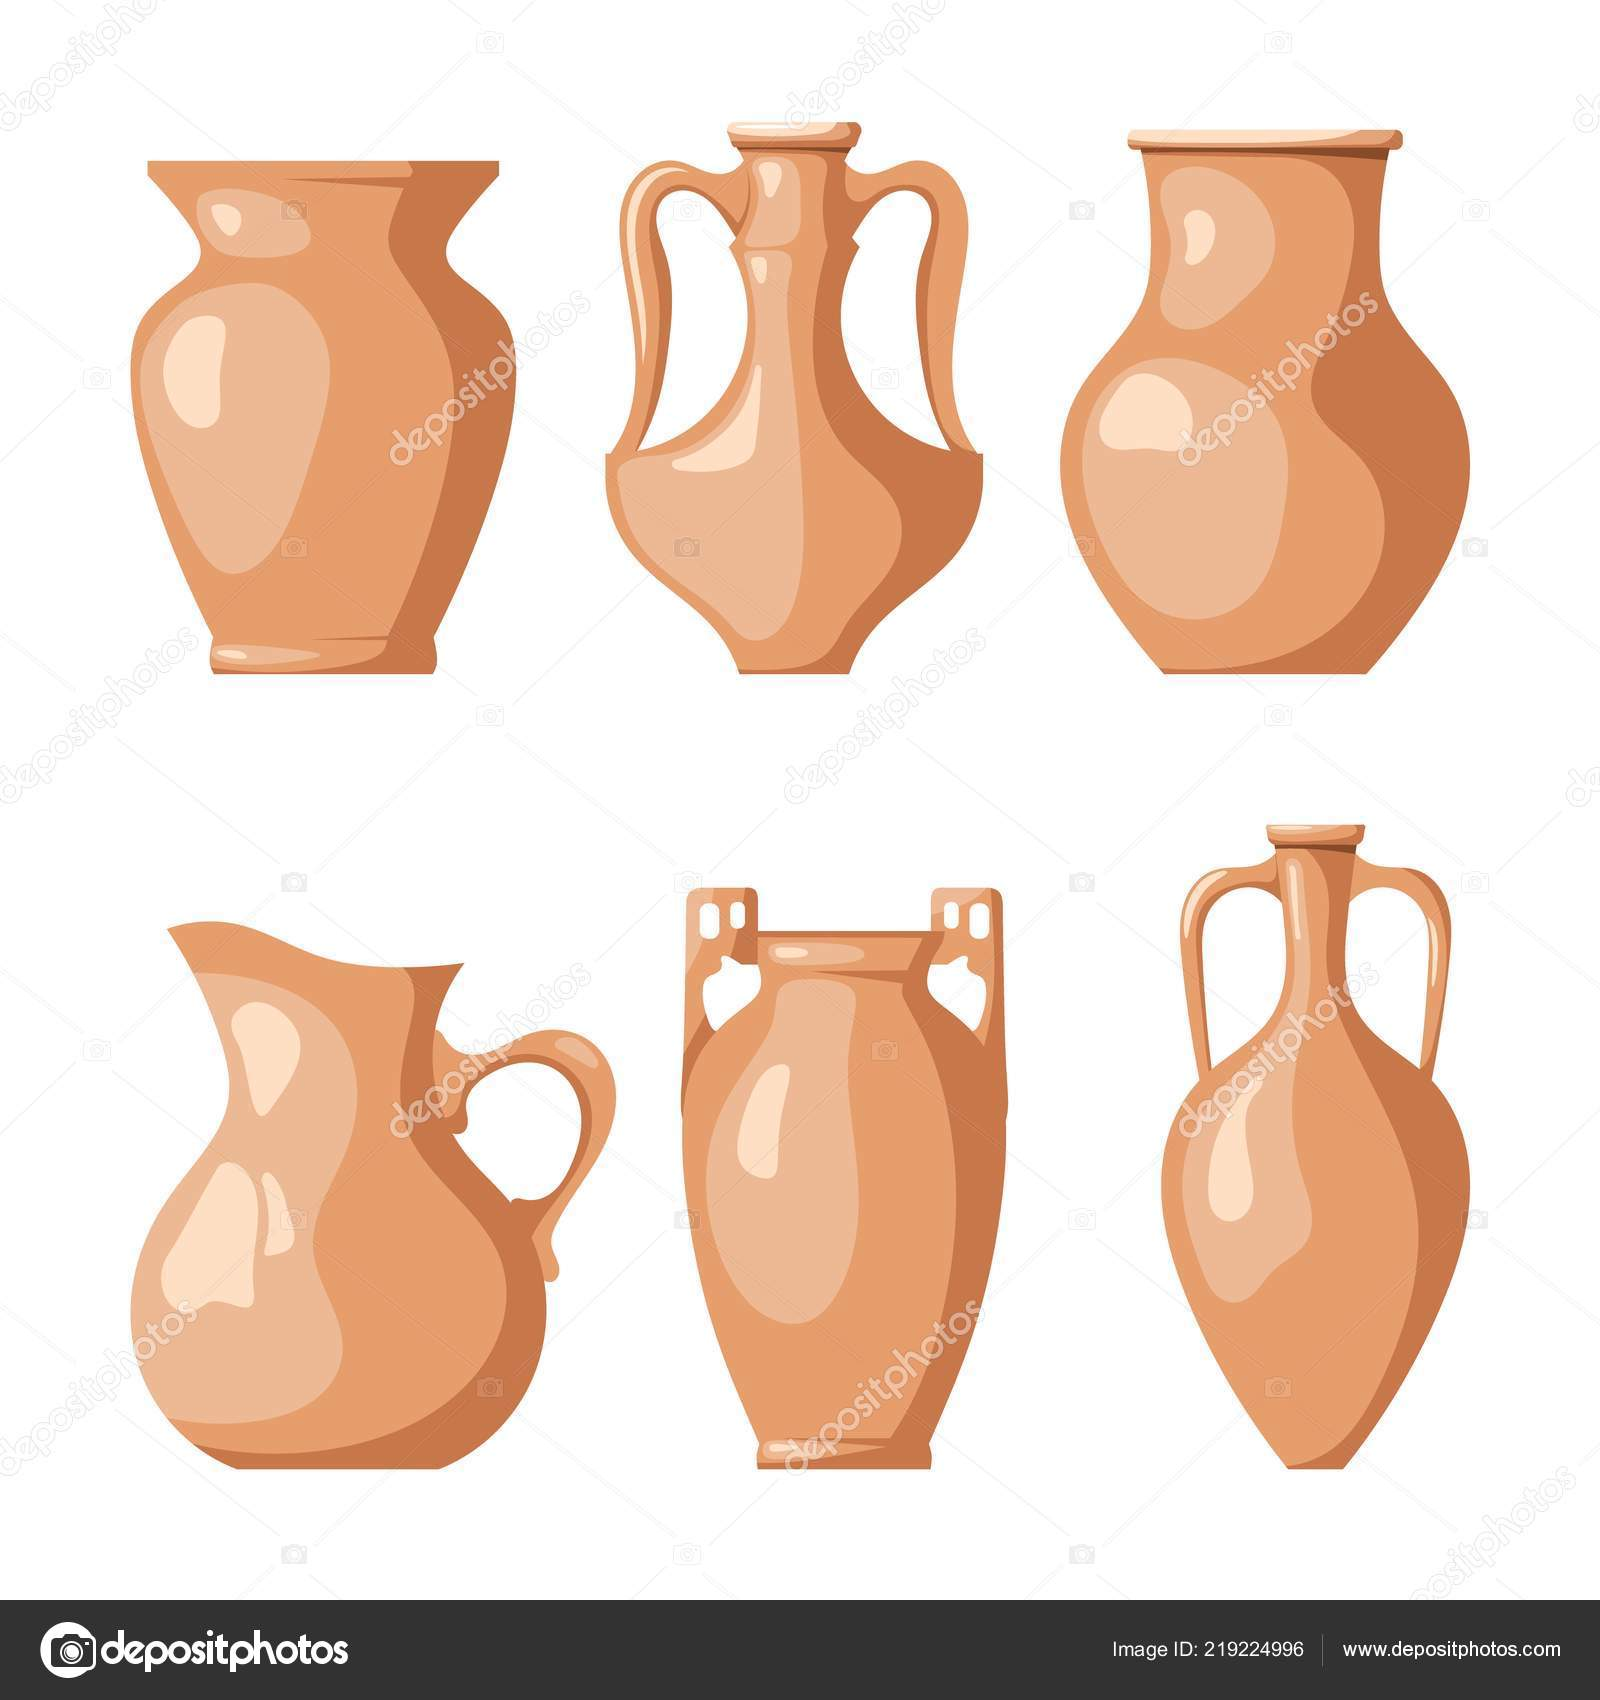 Pitchers Jugs Set Clay Jugs White Background Collection Pitchers Liquid Grain